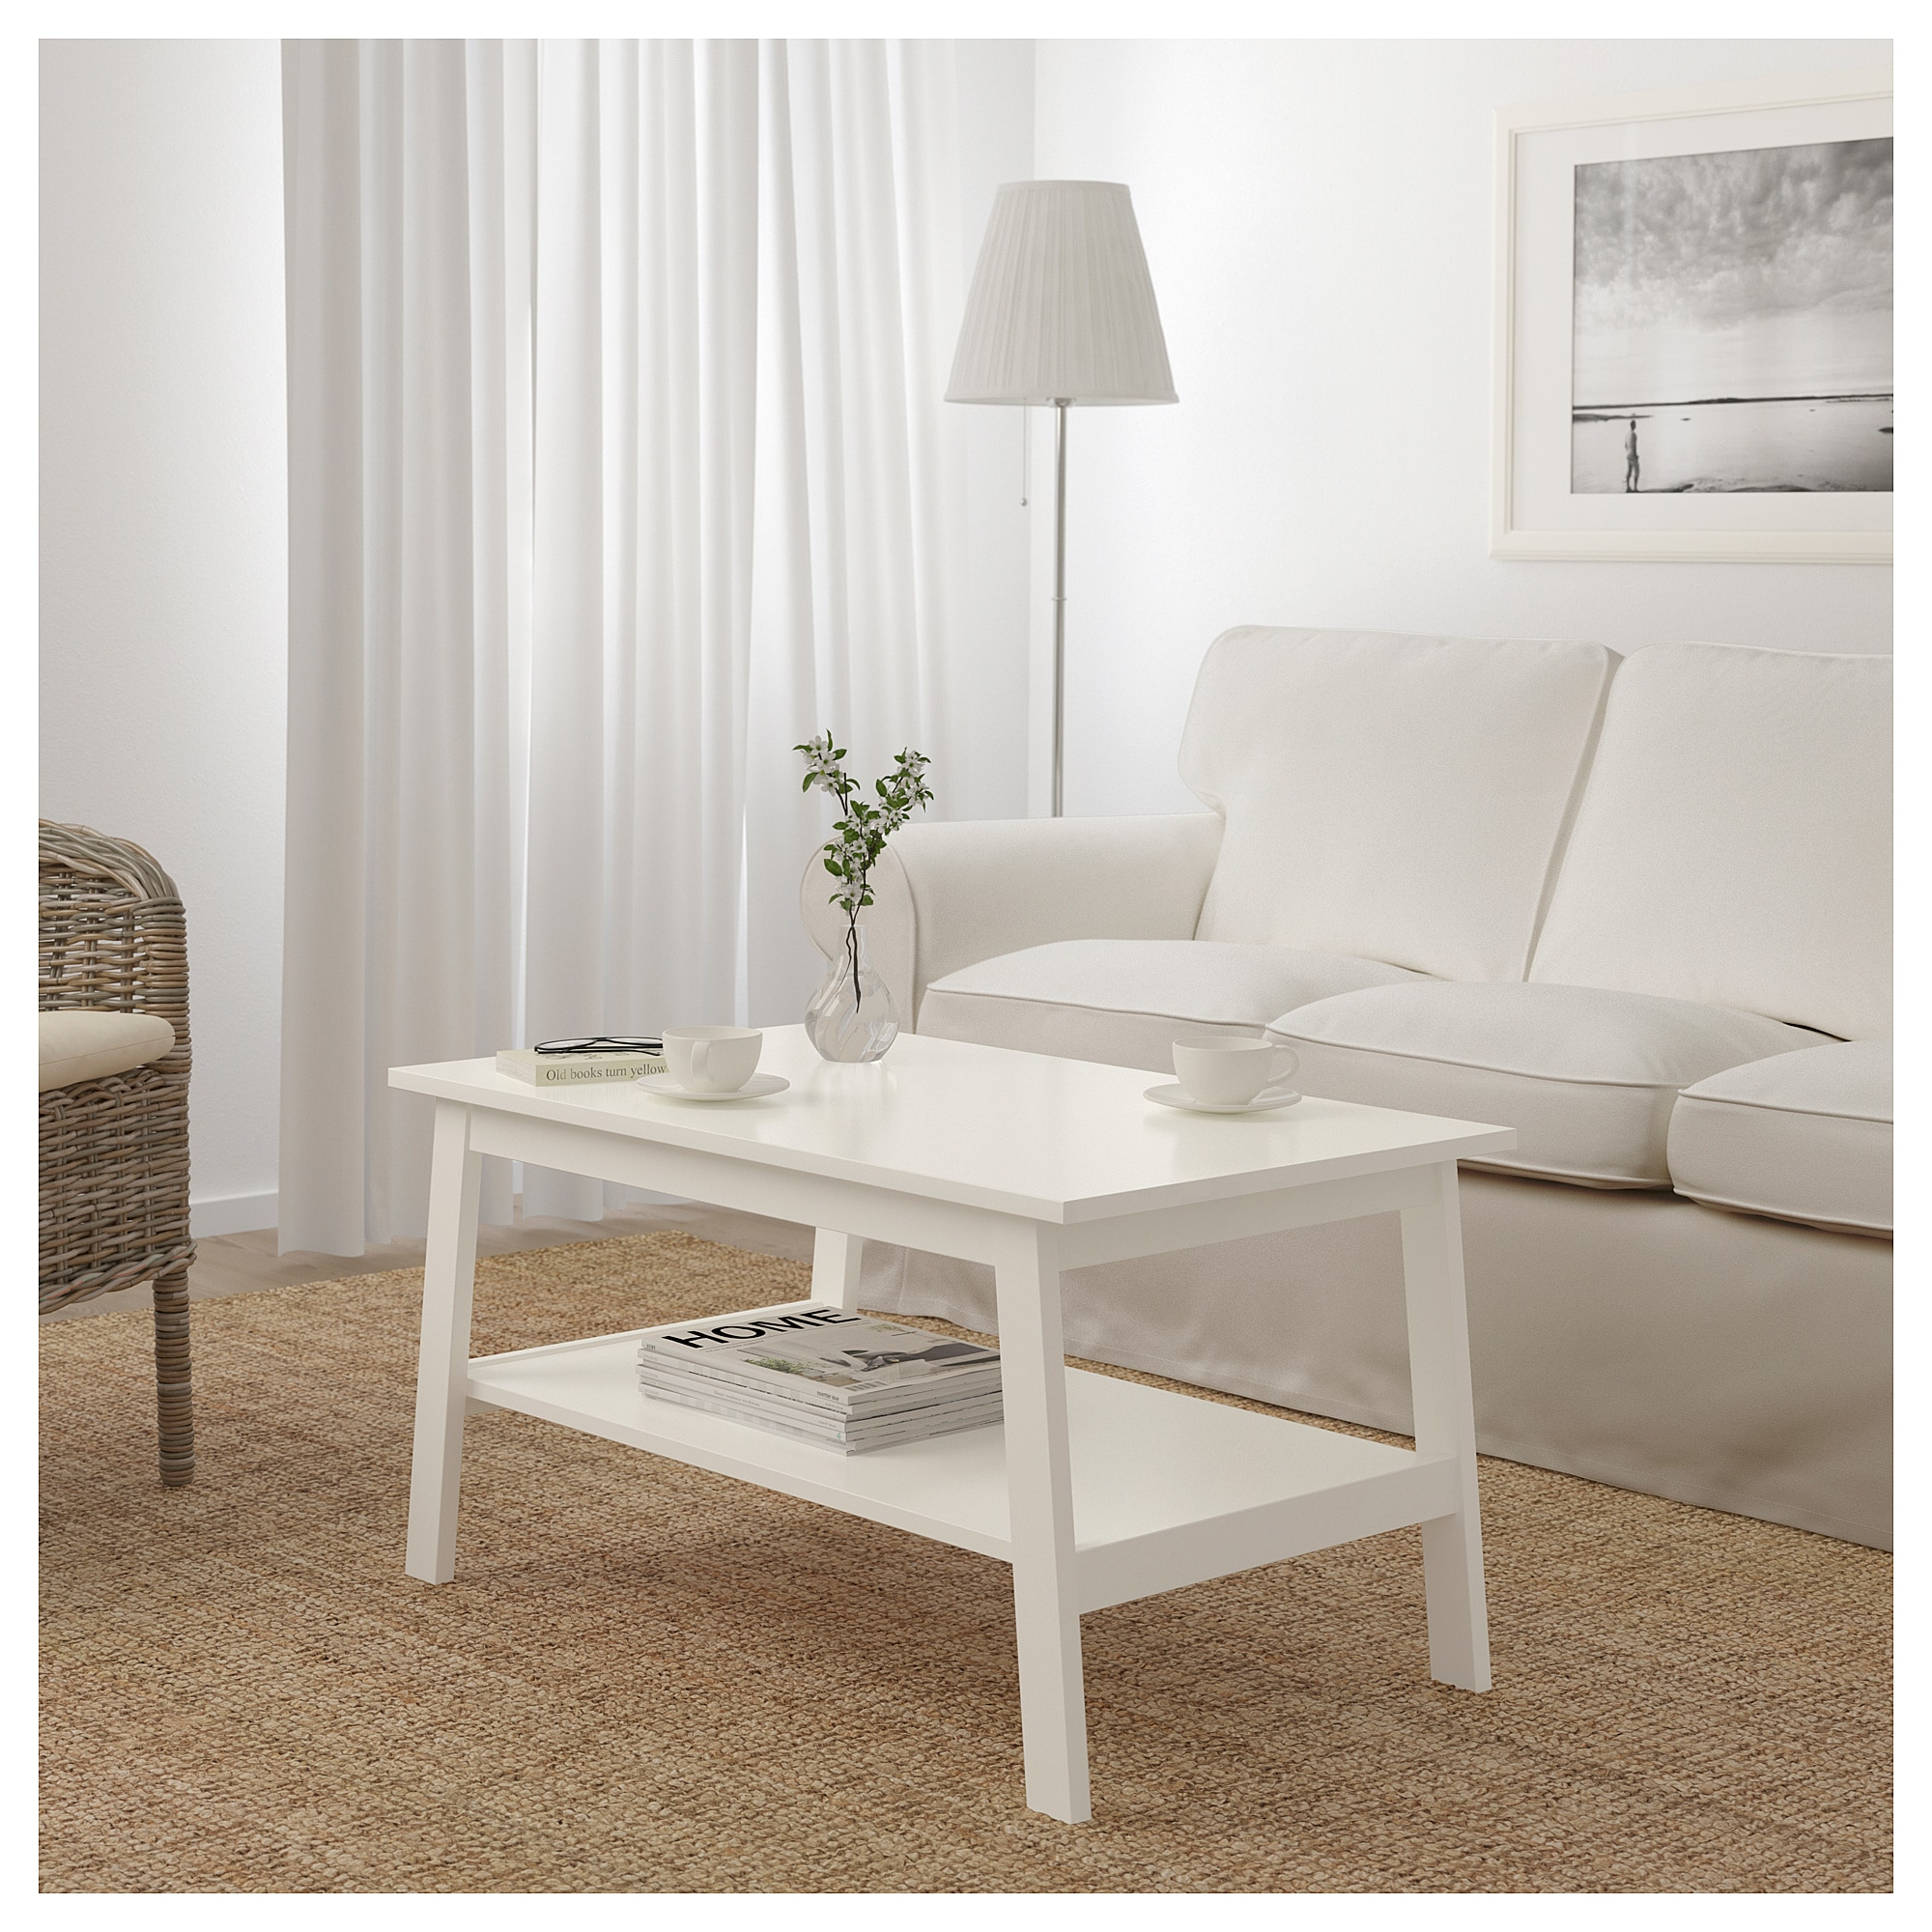 Ikea Lunnarp White Coffee Table Ikea Coffee Table Living